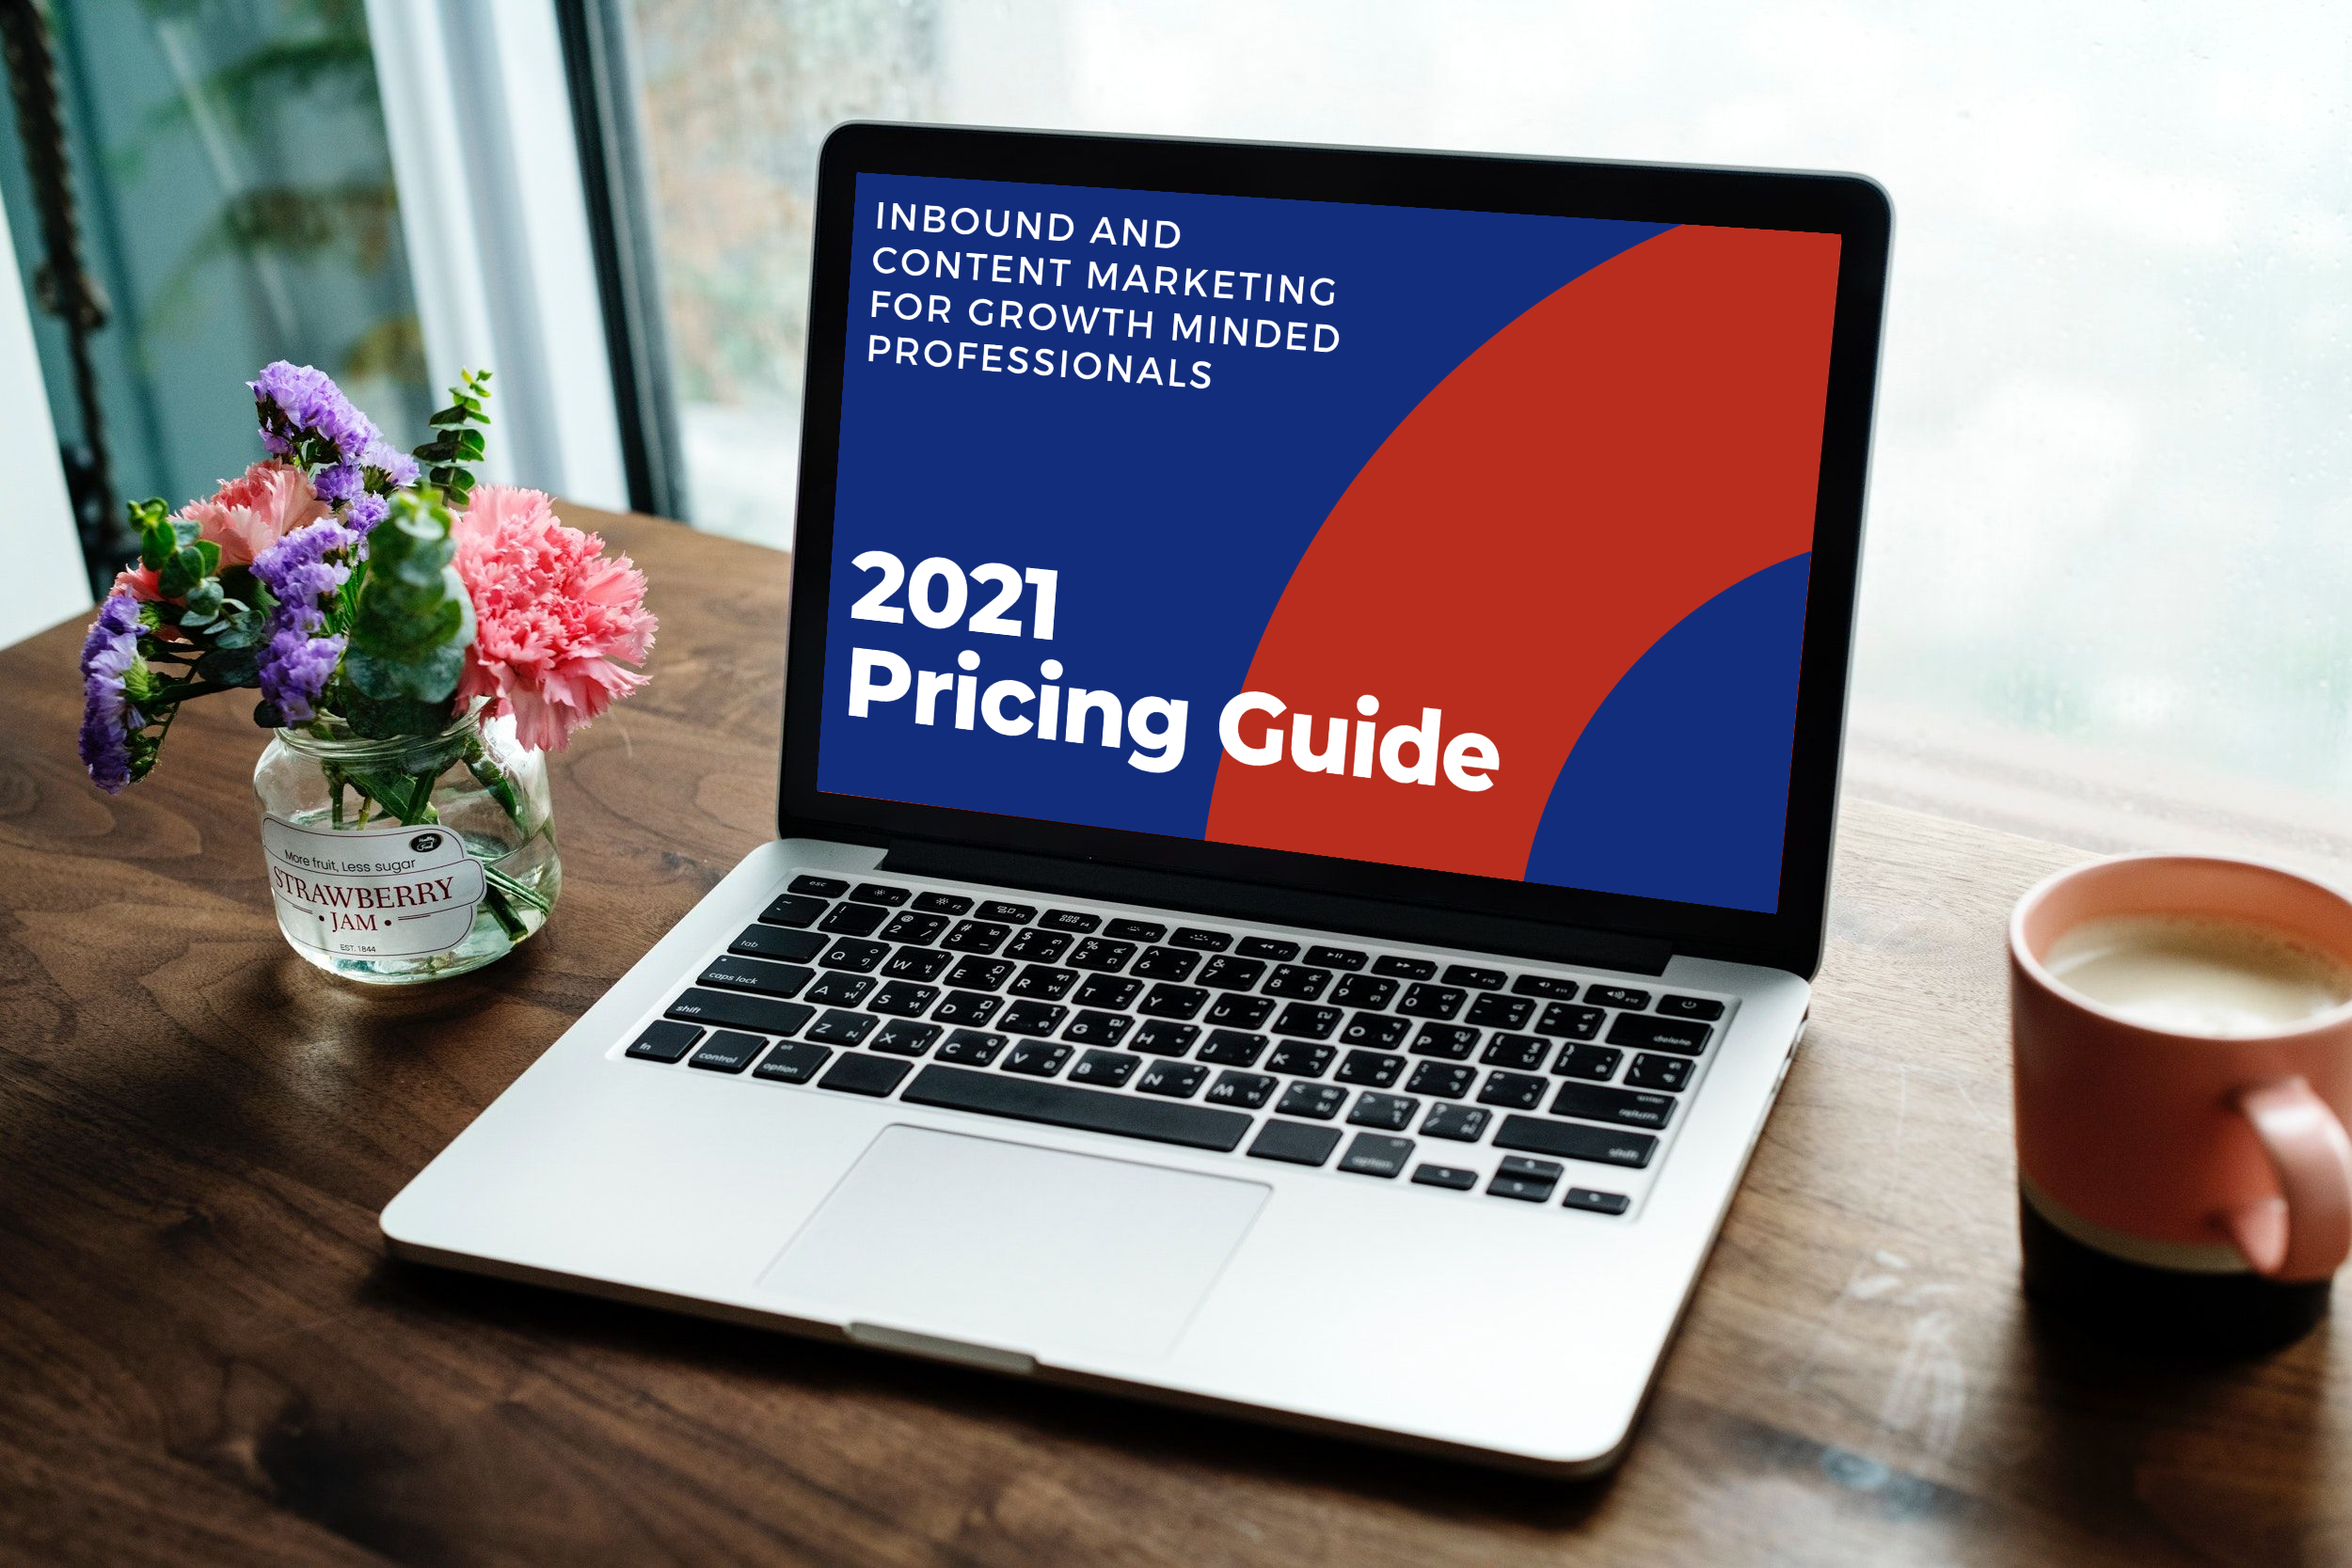 2021 pricing brochure mockup